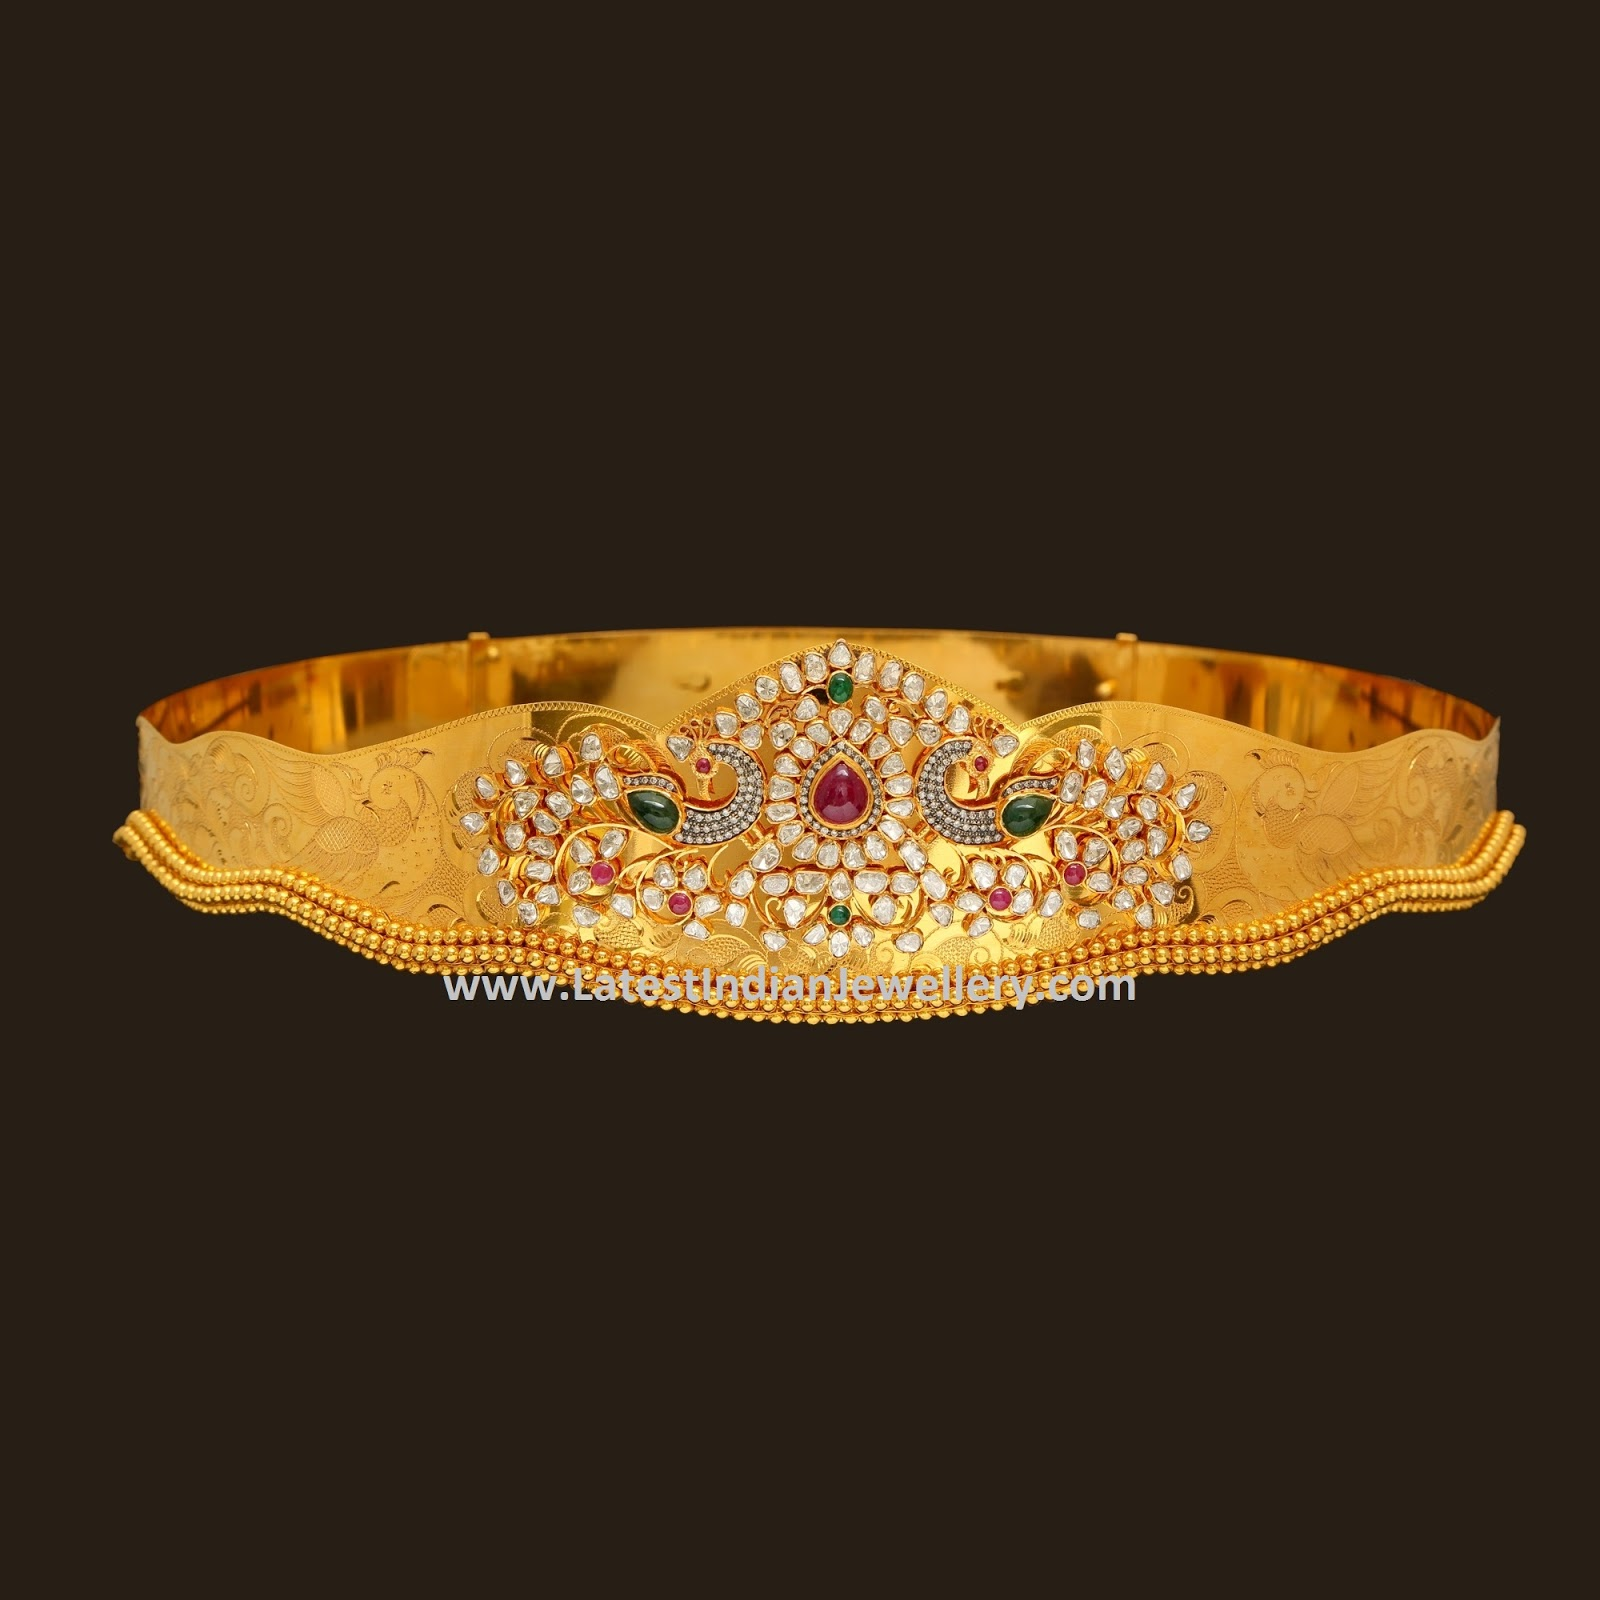 280 Gms Polki Vaddanam Latest Indian Jewellery Designs